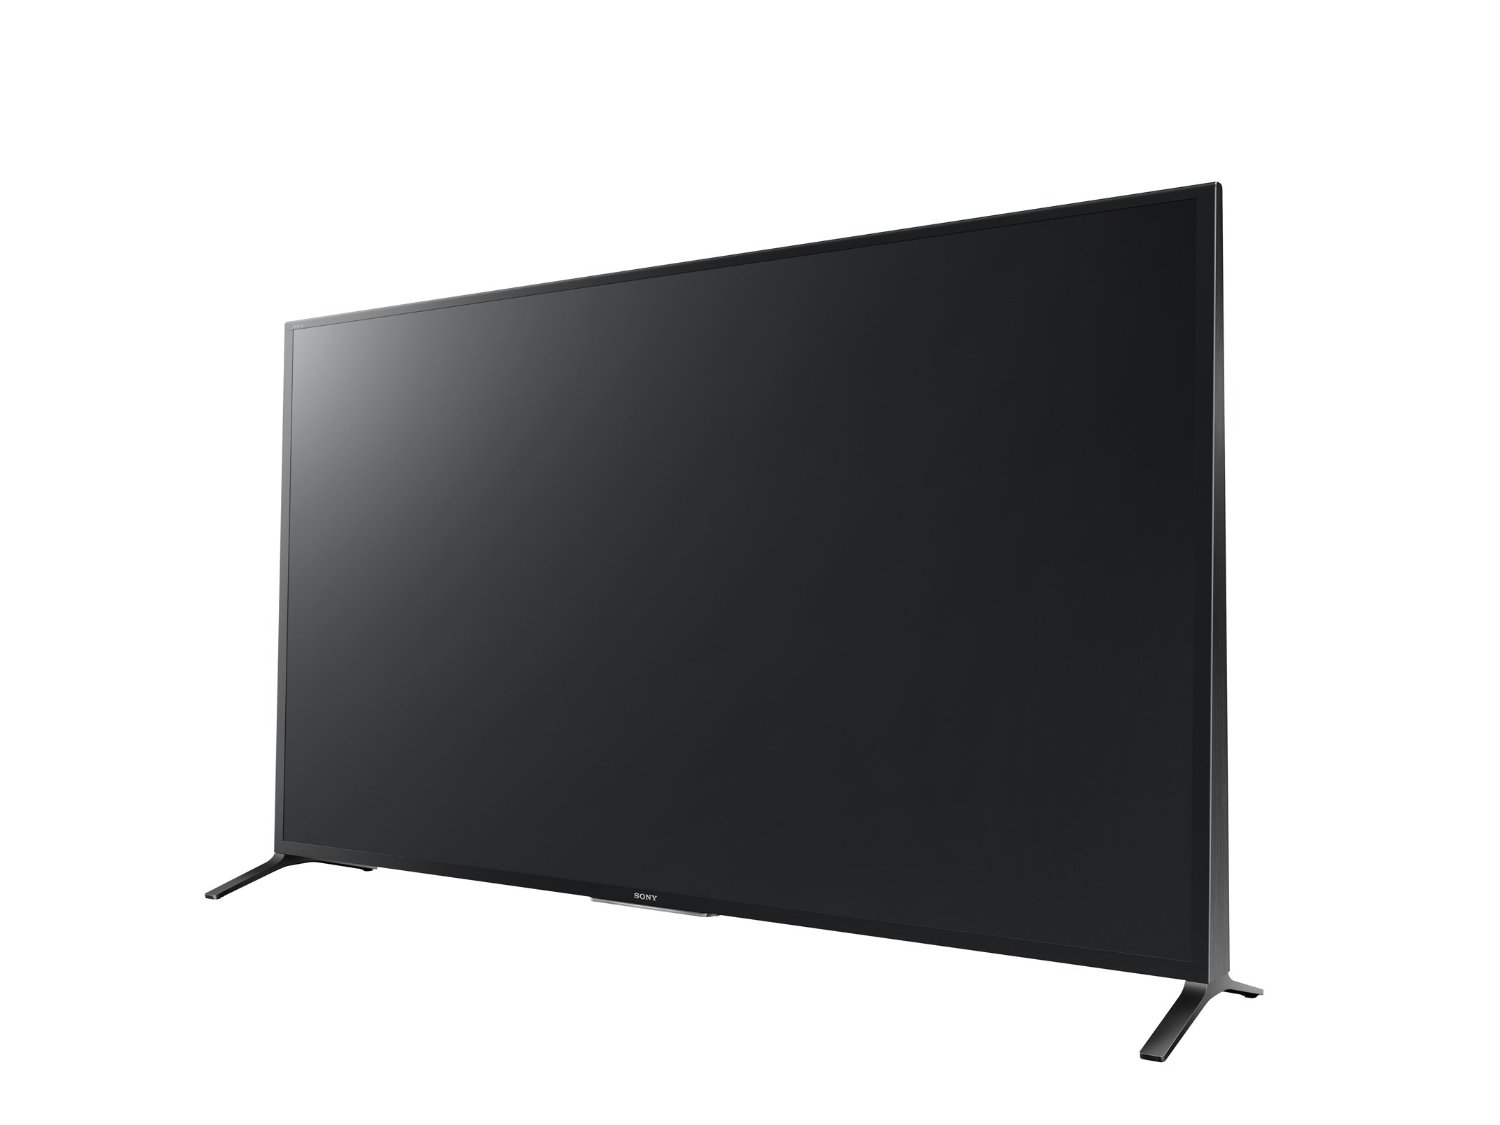 sold sold sold great deal 70 inch sony bravia 3d led smart tv 2014 edition technology. Black Bedroom Furniture Sets. Home Design Ideas